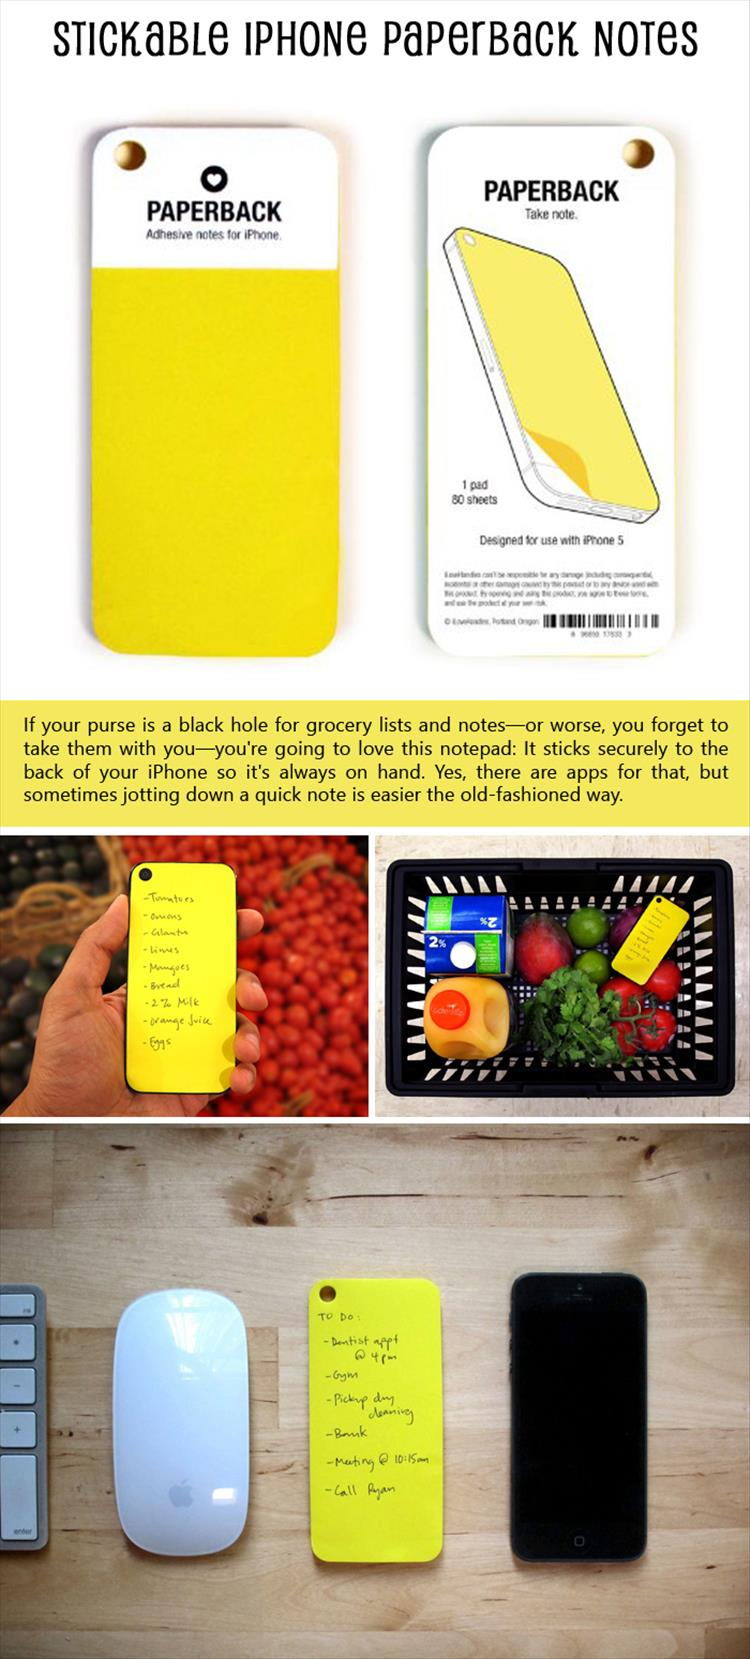 Stickable iPhone Paperback Notes